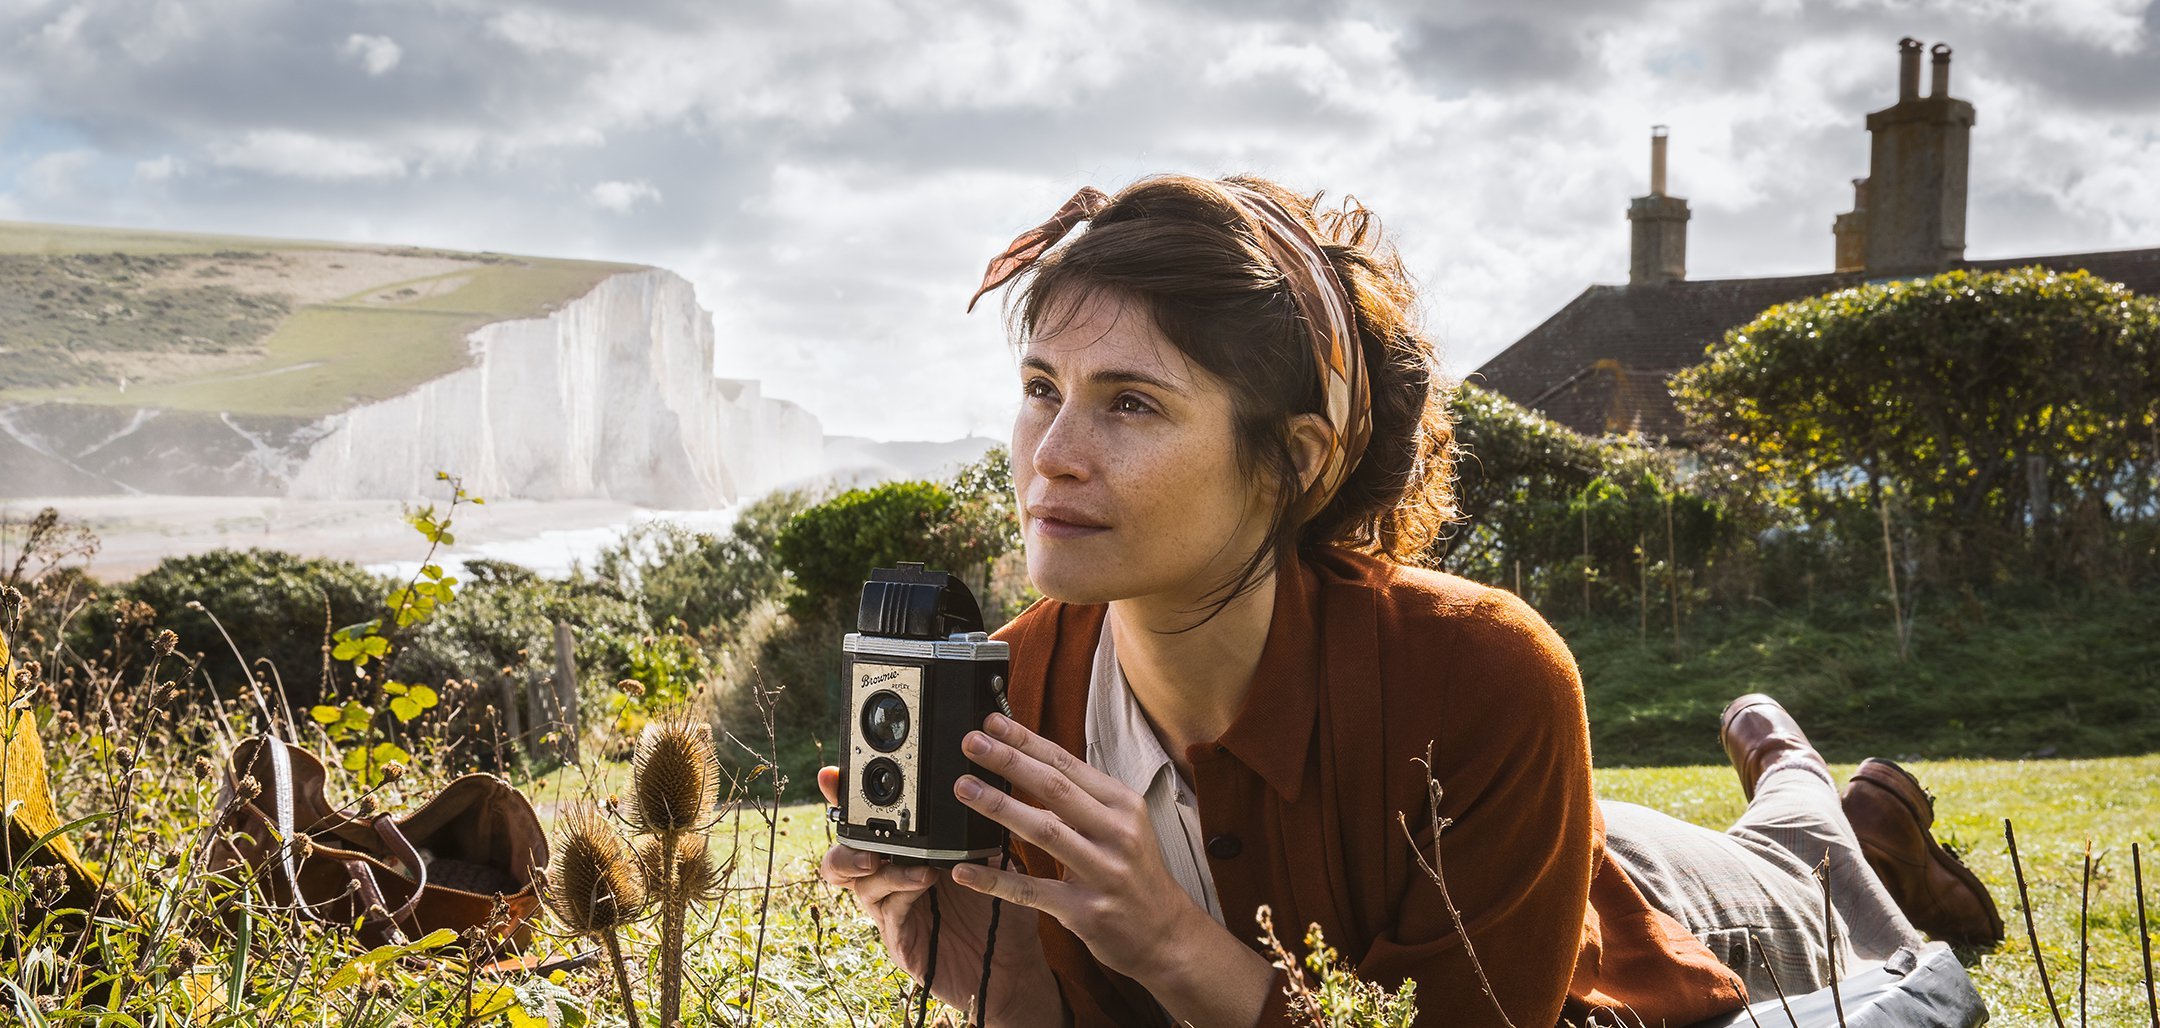 Gemma Arterton lying in a field with a camera in a still from Summerland (2020)